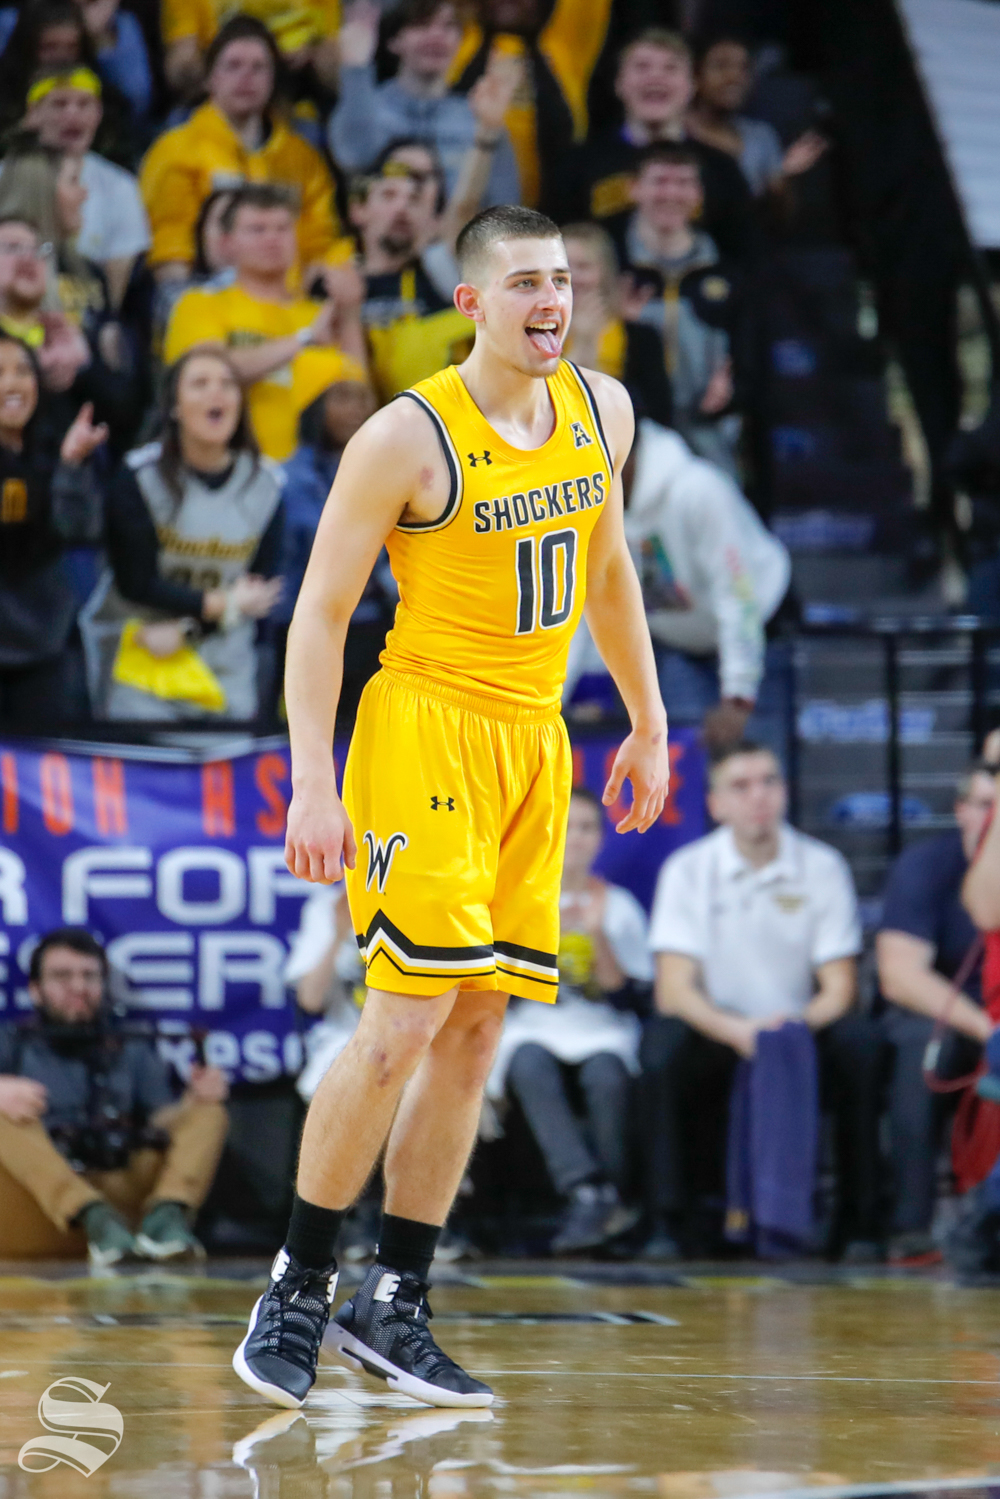 Wichita+State+guard+Erik+Stevenson+sticks+his+tongue+out+after+making+a+three-point+basket+during+the+game+against+Tulane+on+Feb.+9%2C+2019+at+Charles+Koch+Arena.+%28Photo+by+Joseph+Barringhaus%2FThe+Sunflower%29.